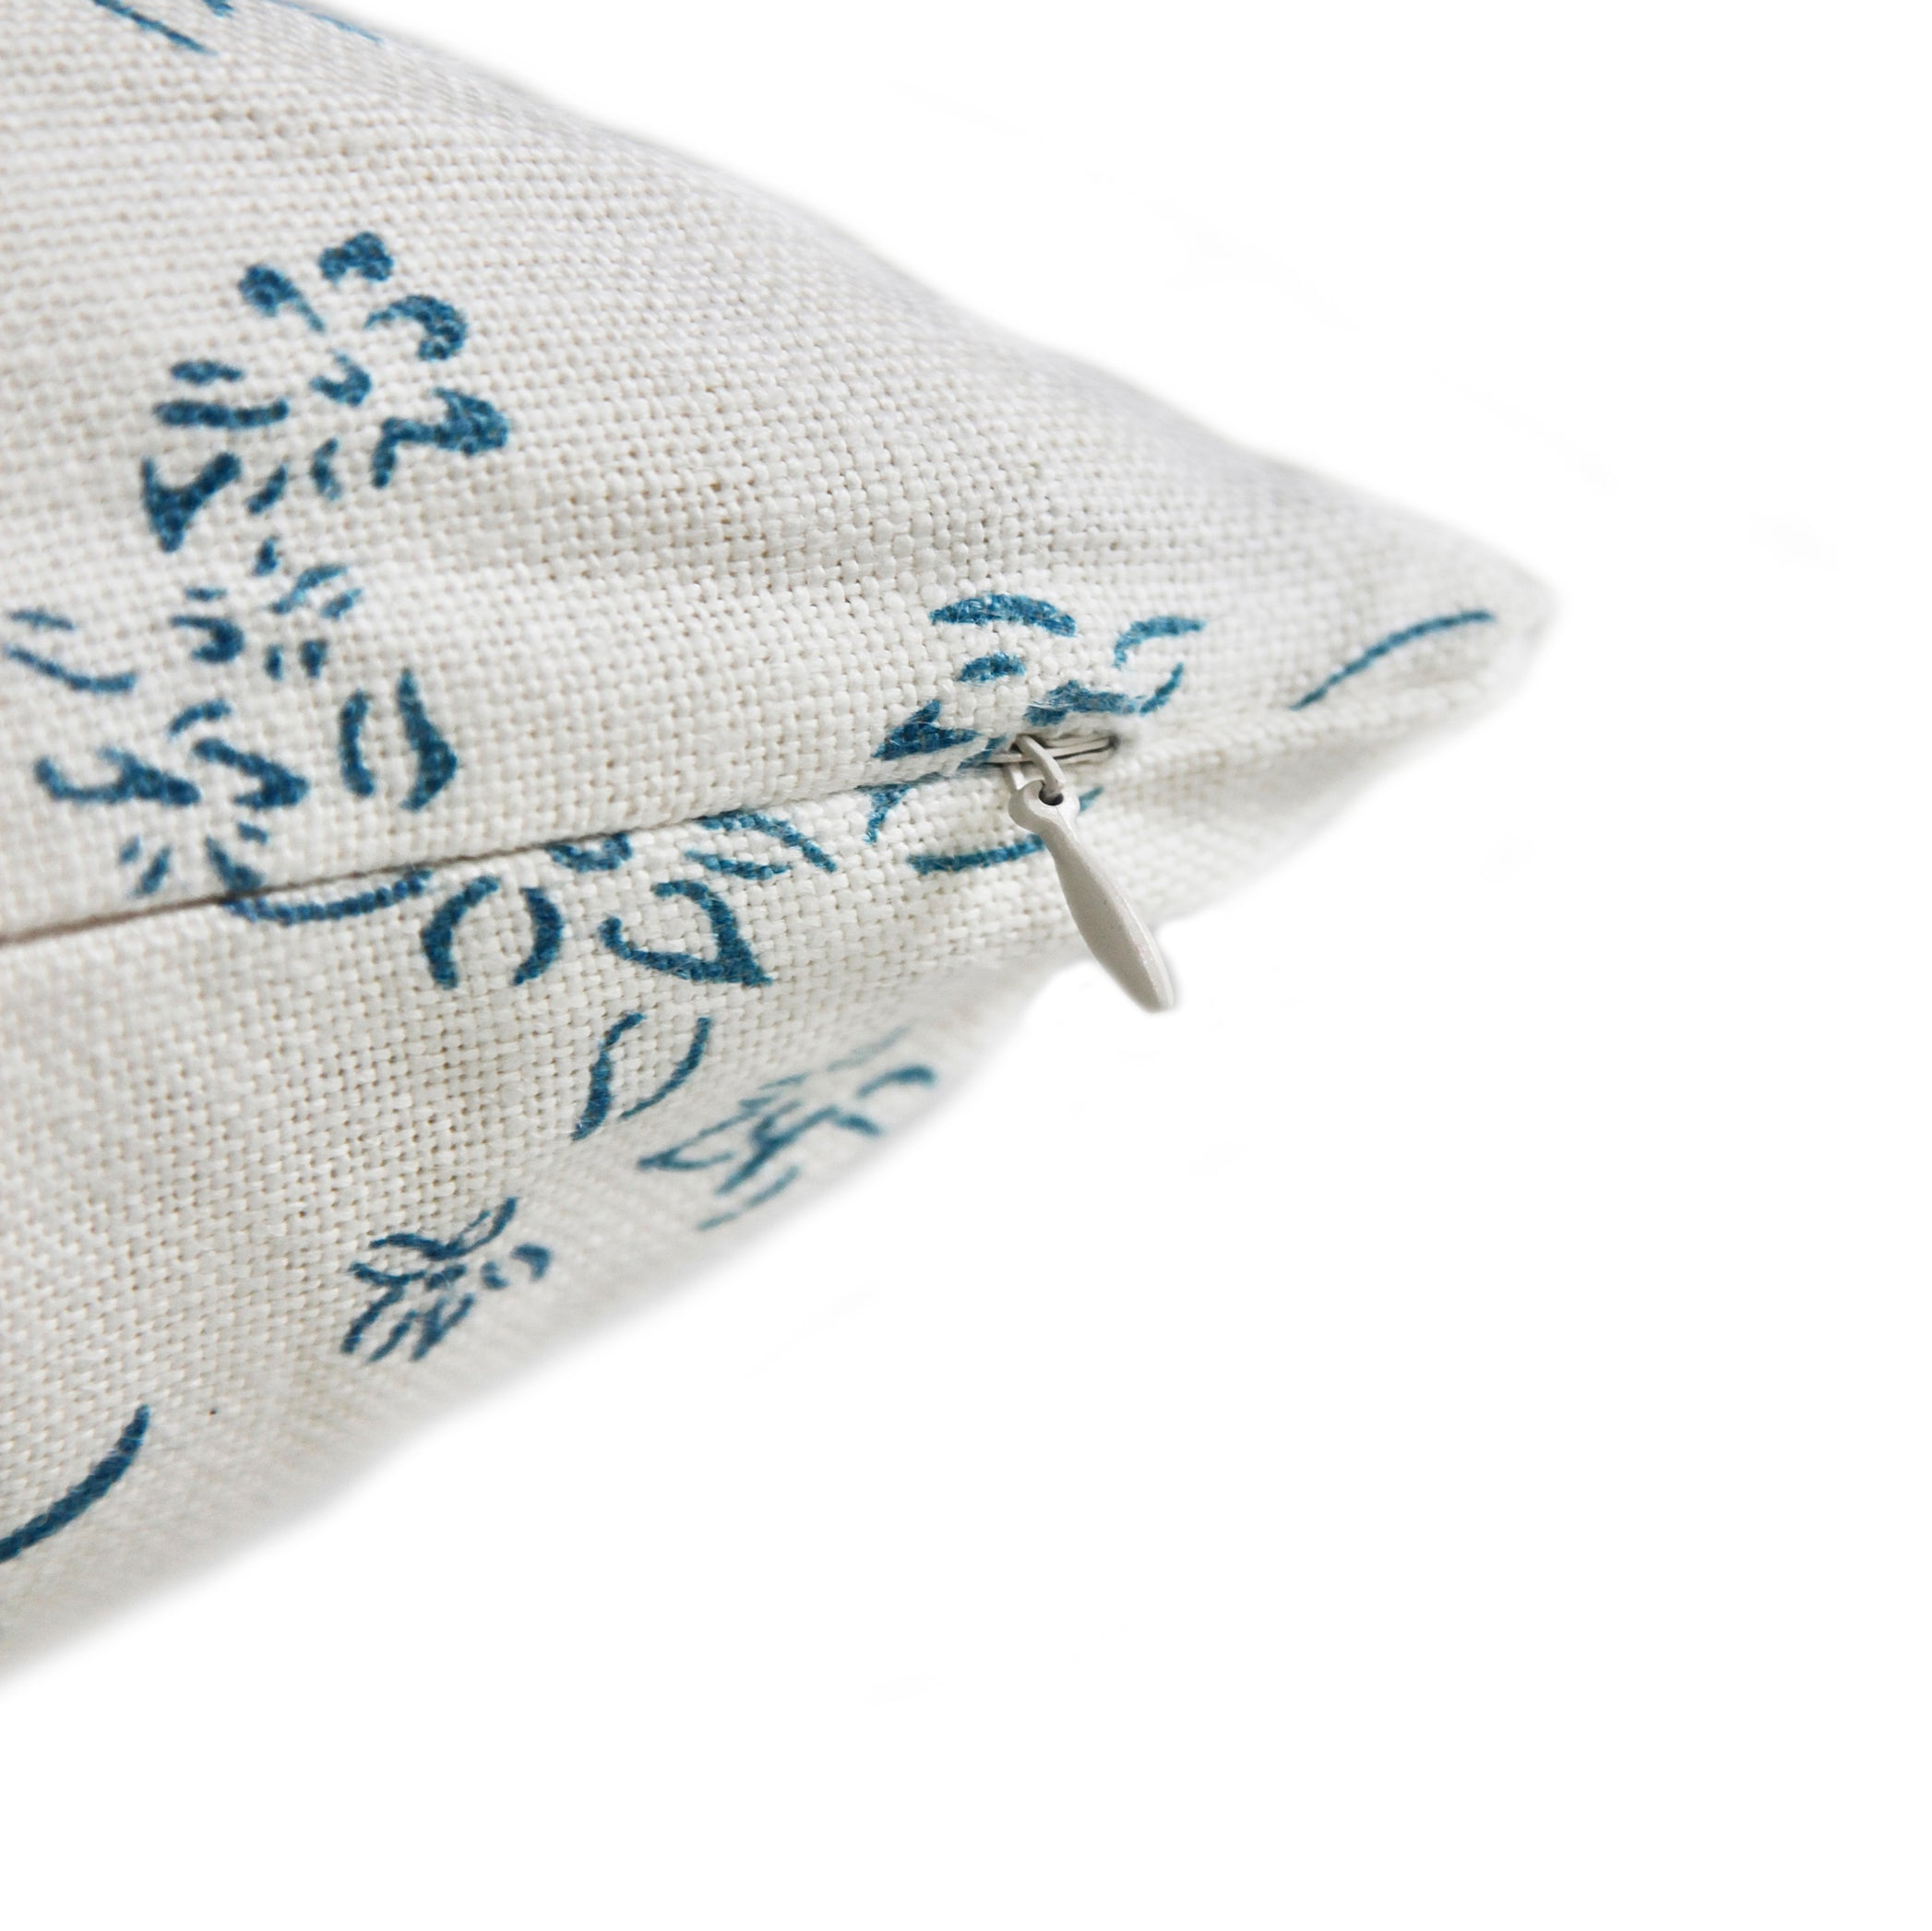 Heavy Linen Falling Flower Cushion in Blue on White, 50cm x 50cm